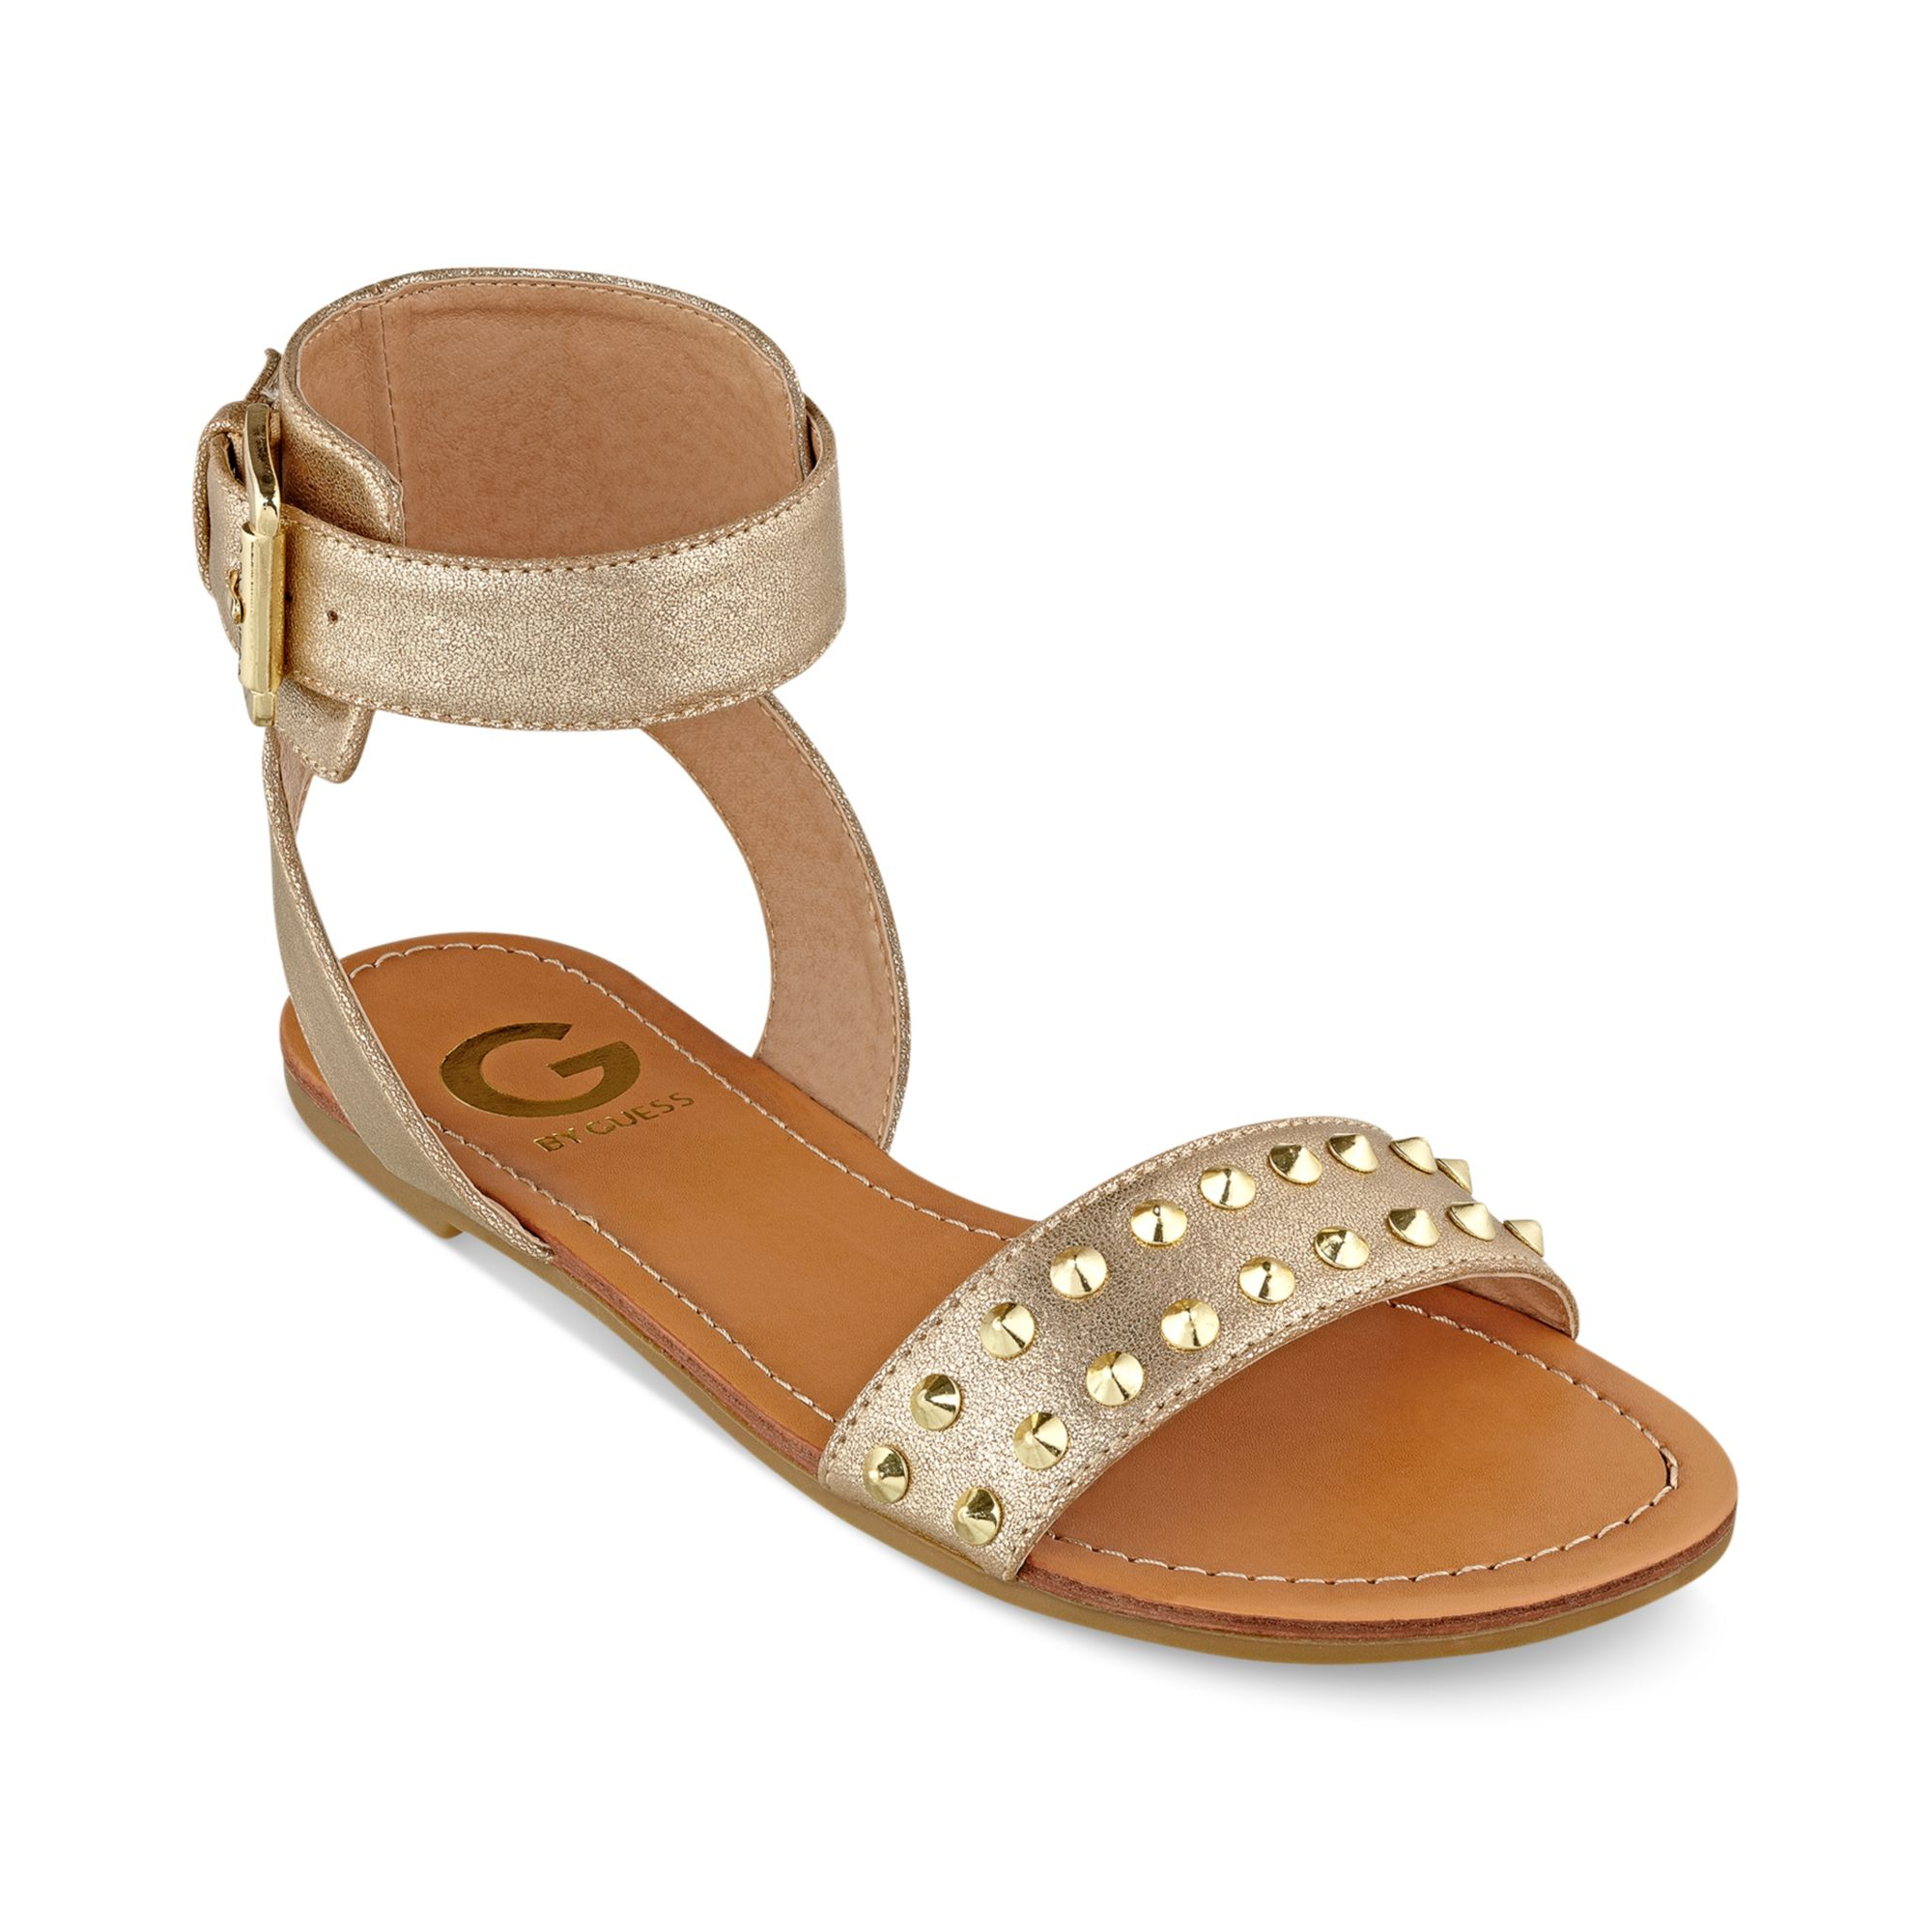 Wonderful Clothing Shoes Amp Accessories Gt Women39s Shoes Gt Sandals Amp F